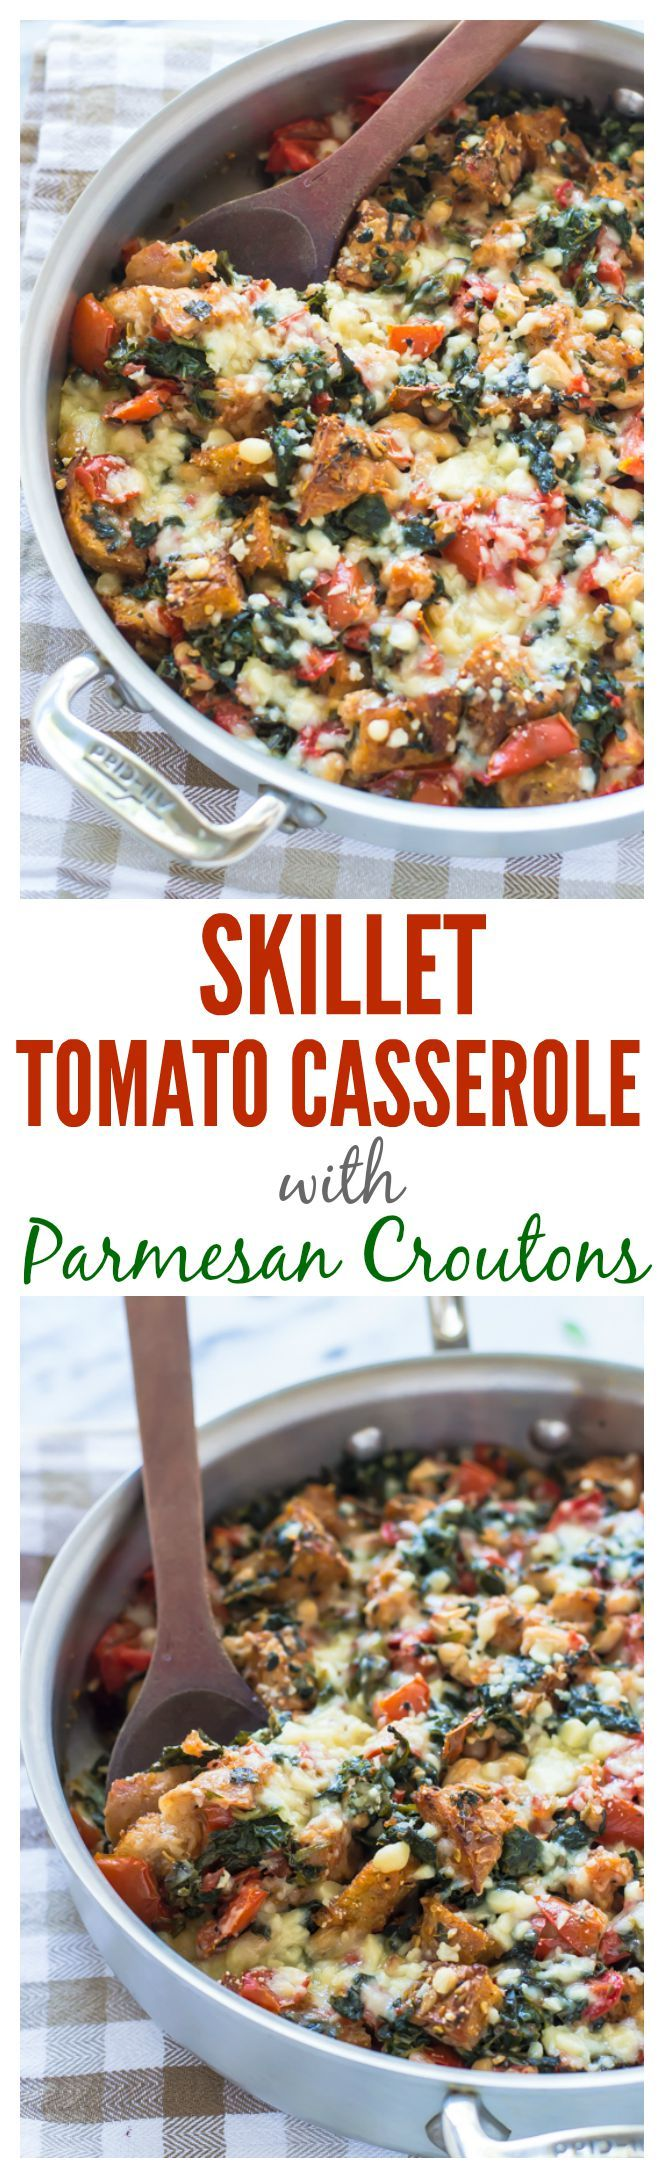 Skillet Tomato Casserole with White Beans and Parmesan Croutons. A gorgeous one-pan vegetarian meal! #vegetarian #tomato